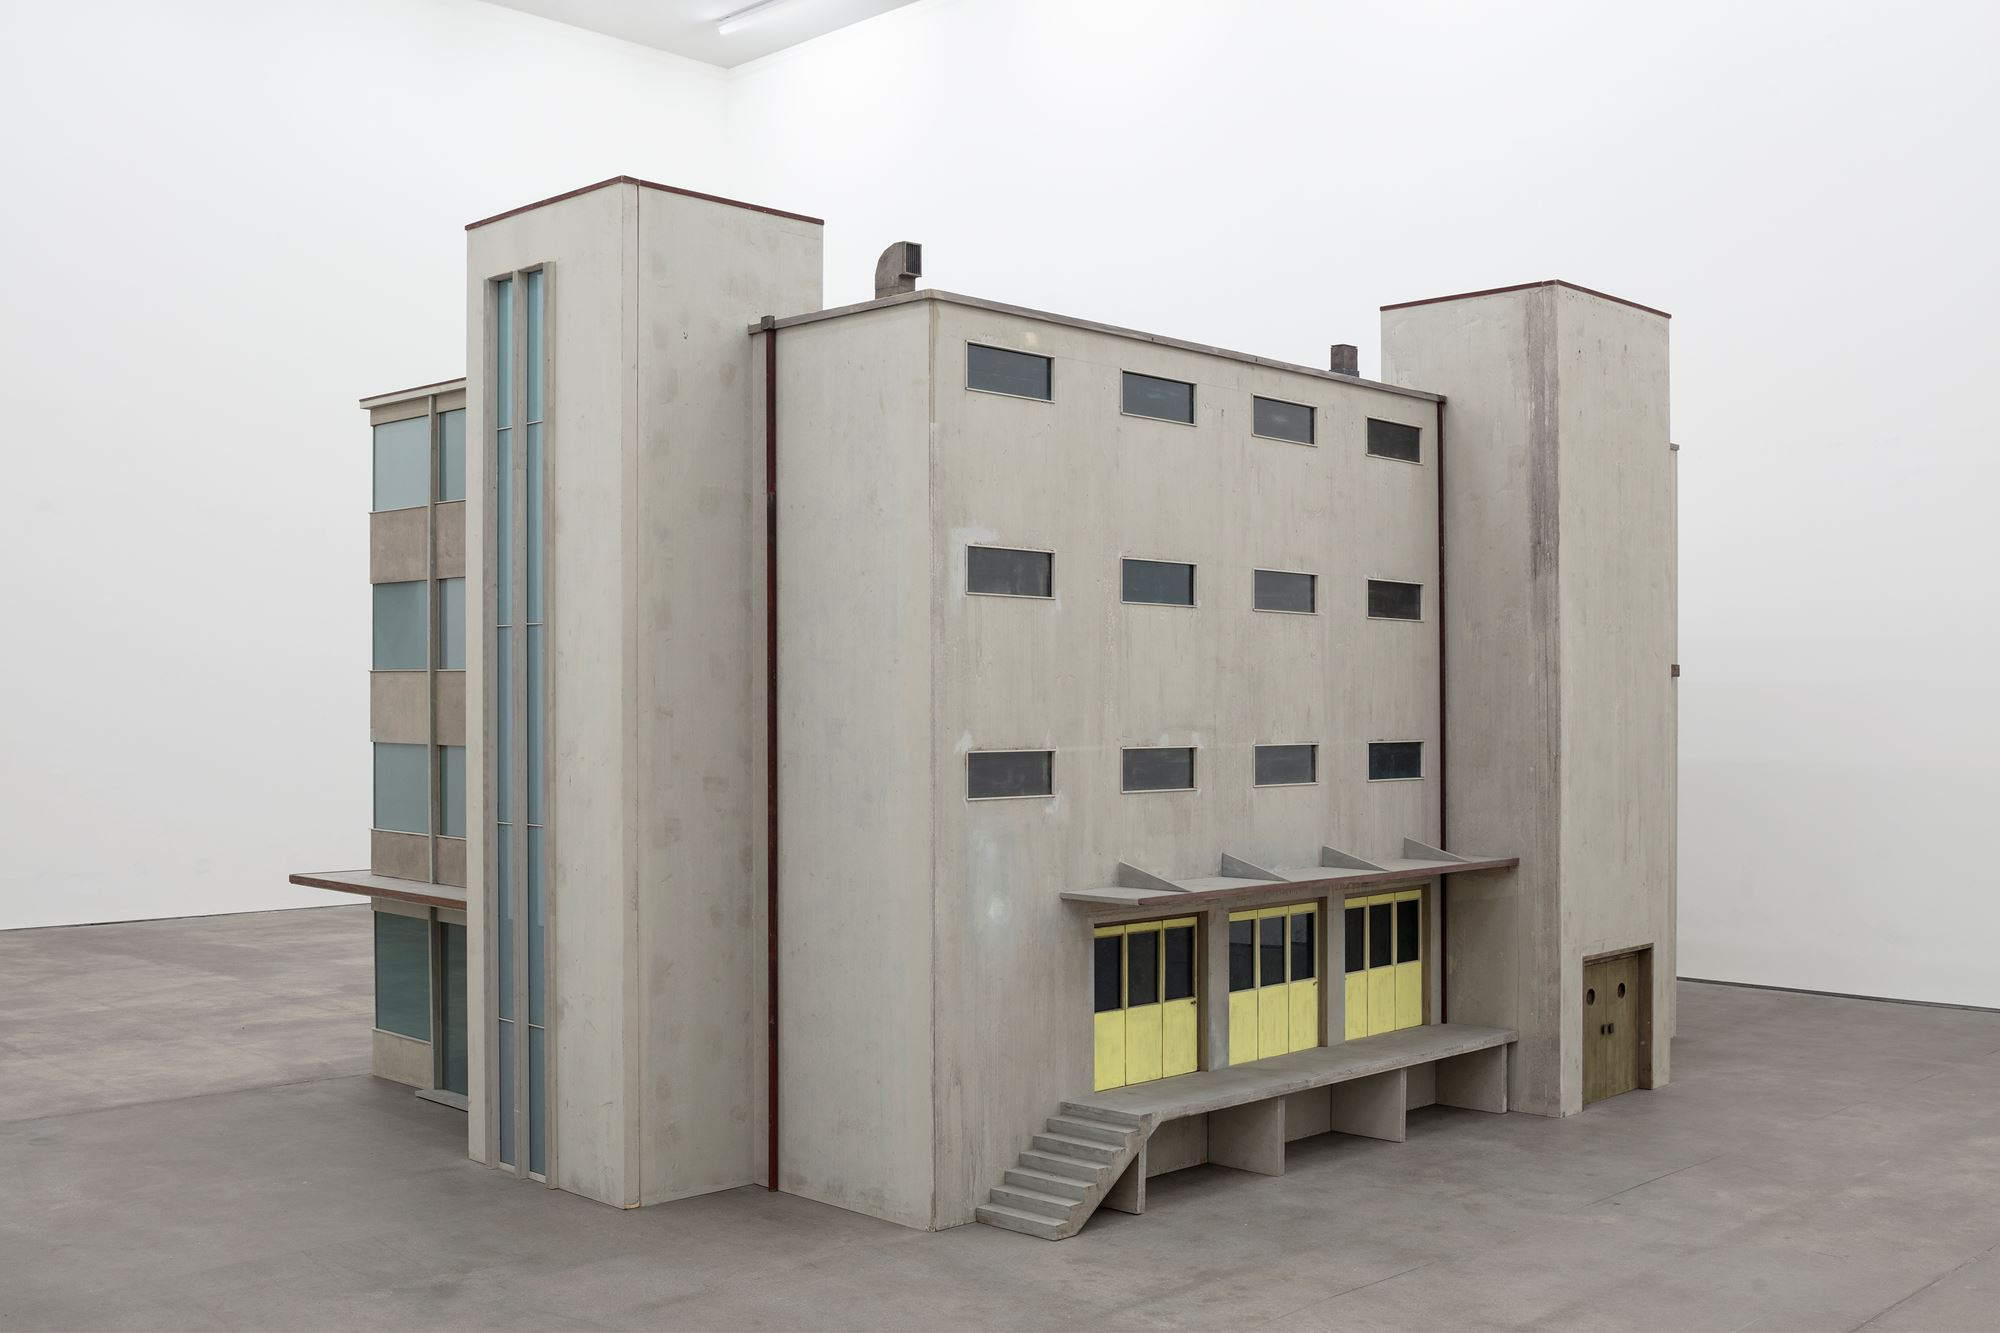 Peter Fischli David Weiss Haus At Sprüth Magers Berlin Germany On 27 Apr 10 Aug 2019 Ocula